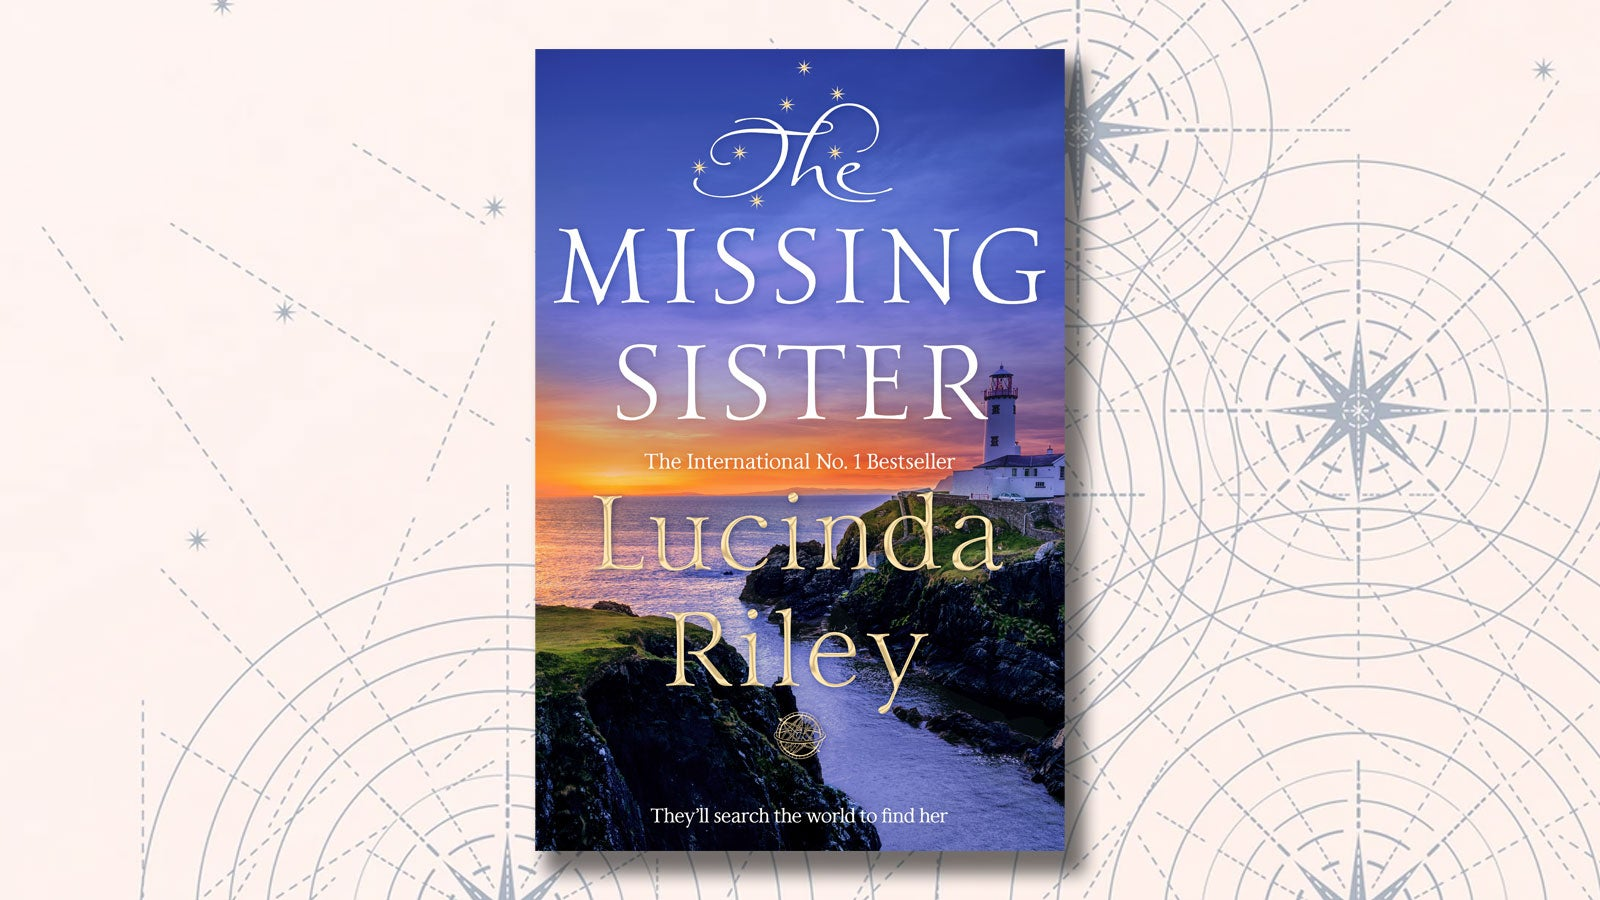 The Missing Sister by Lucinda Riley on a backdrop of a constellations.